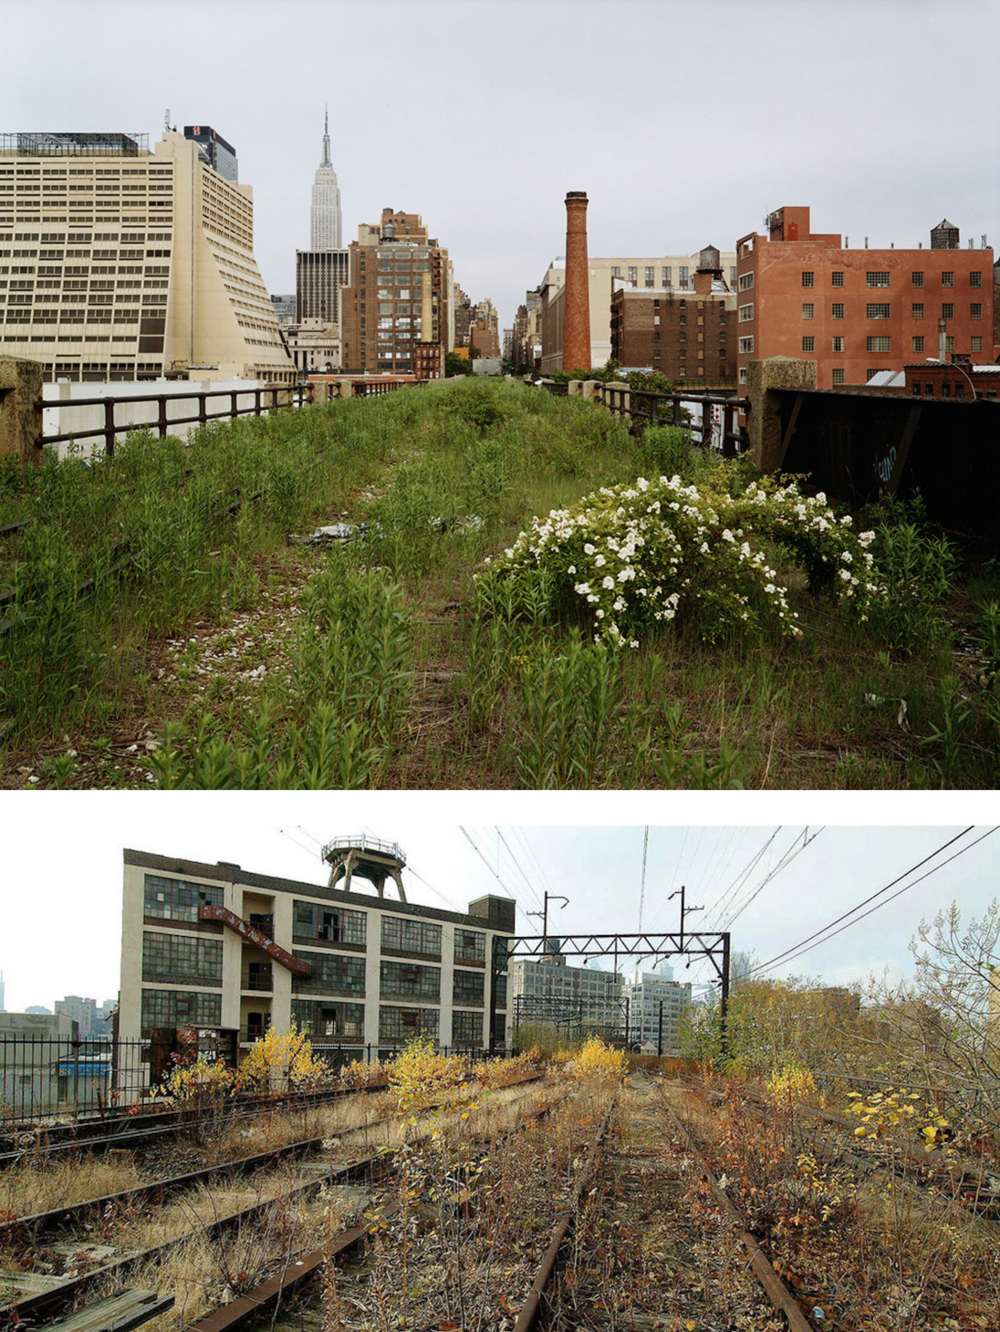 HOW GREAT WAS THE HIGH LINE? It could also have been left alone or taken down.